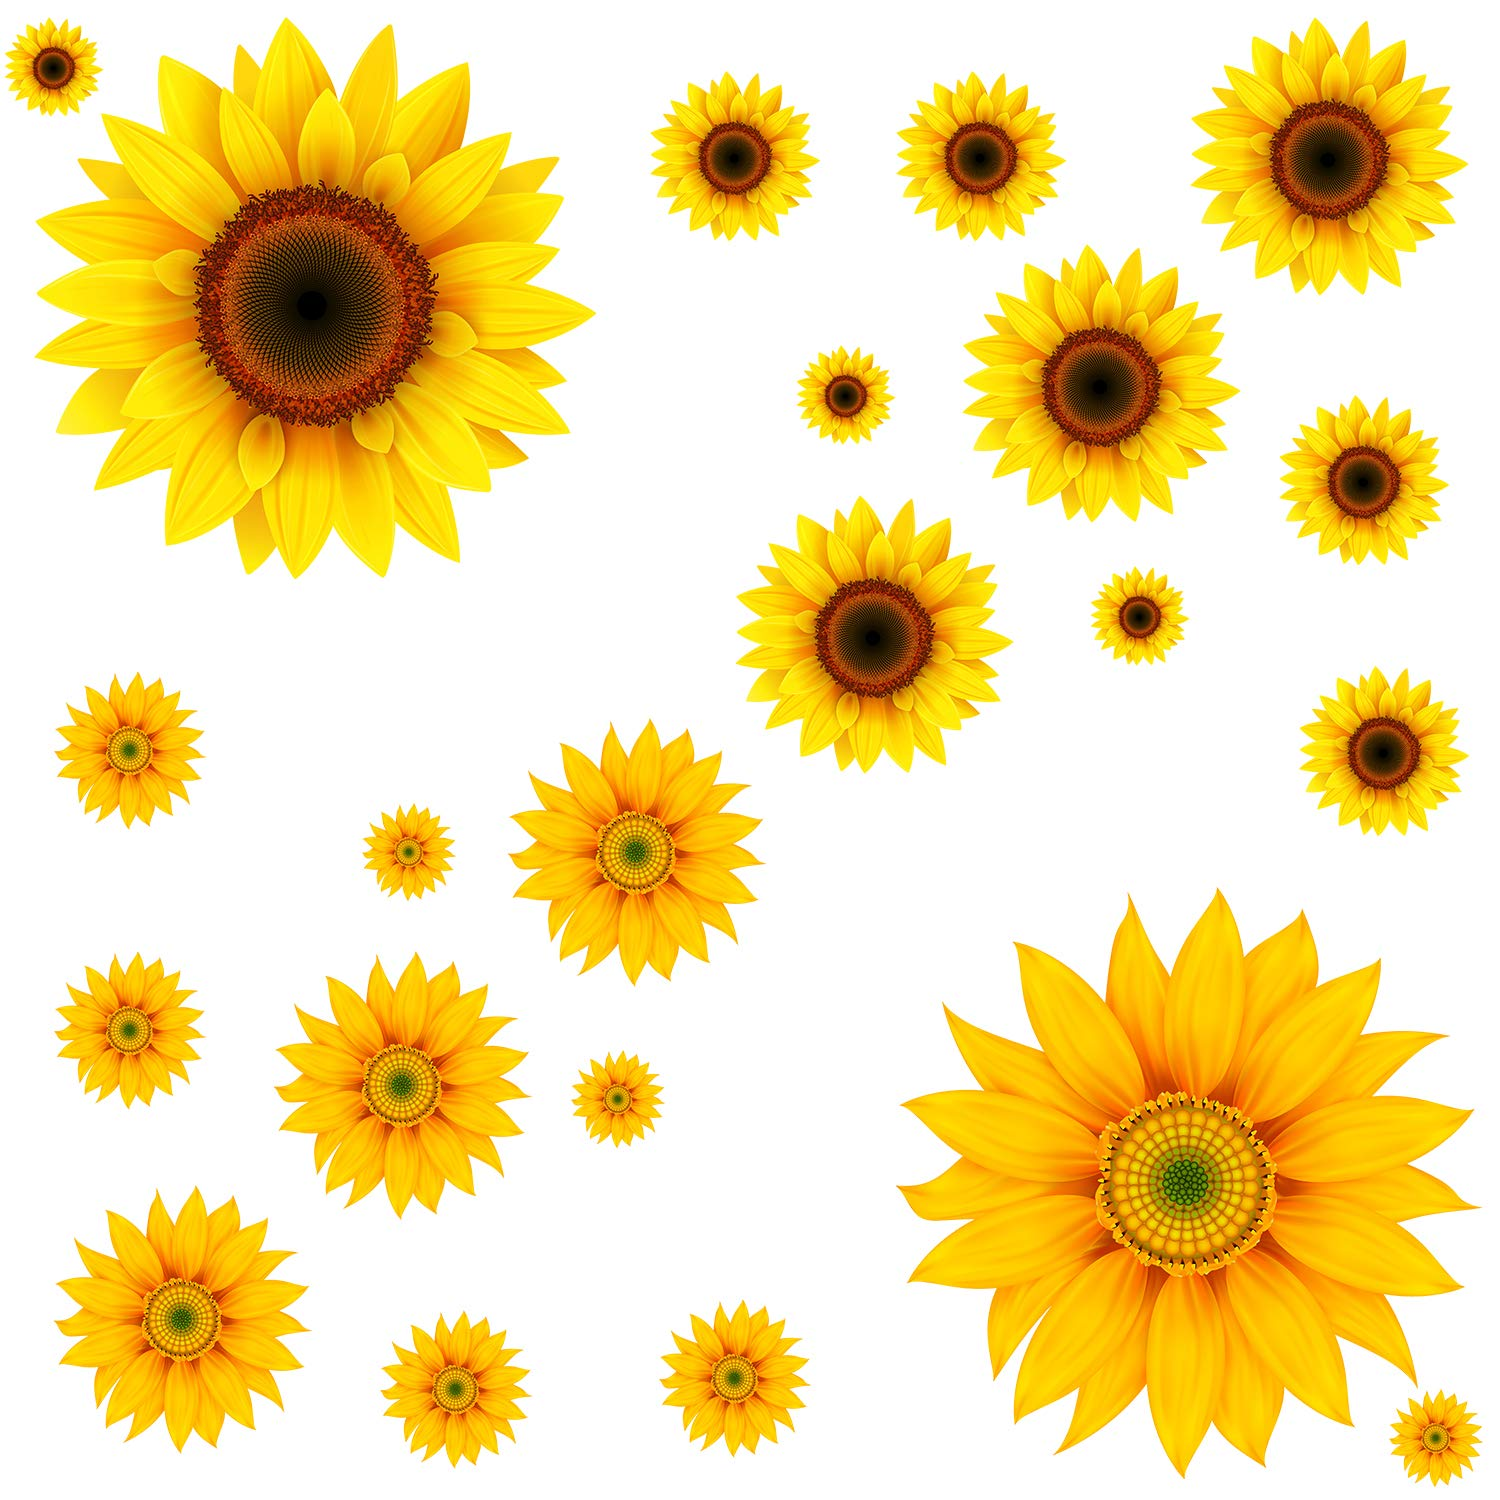 22Pcs DIY Sunflower Wall Sticker 3D Yellow Flower Wall Decals Peel and Stick Removable Wall Art Decor Nursery Daisy Floral Stickers for Kids Baby Living Room Decoration by Prabahdak